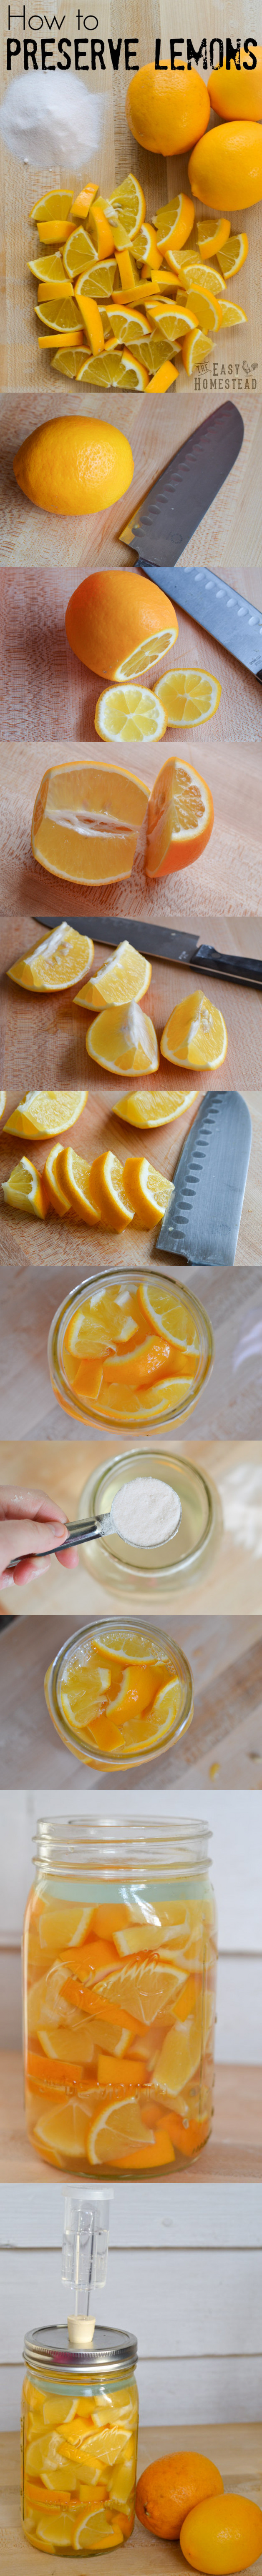 How to Preserve Lemons (Fermented Lemons | The Easy Homestead